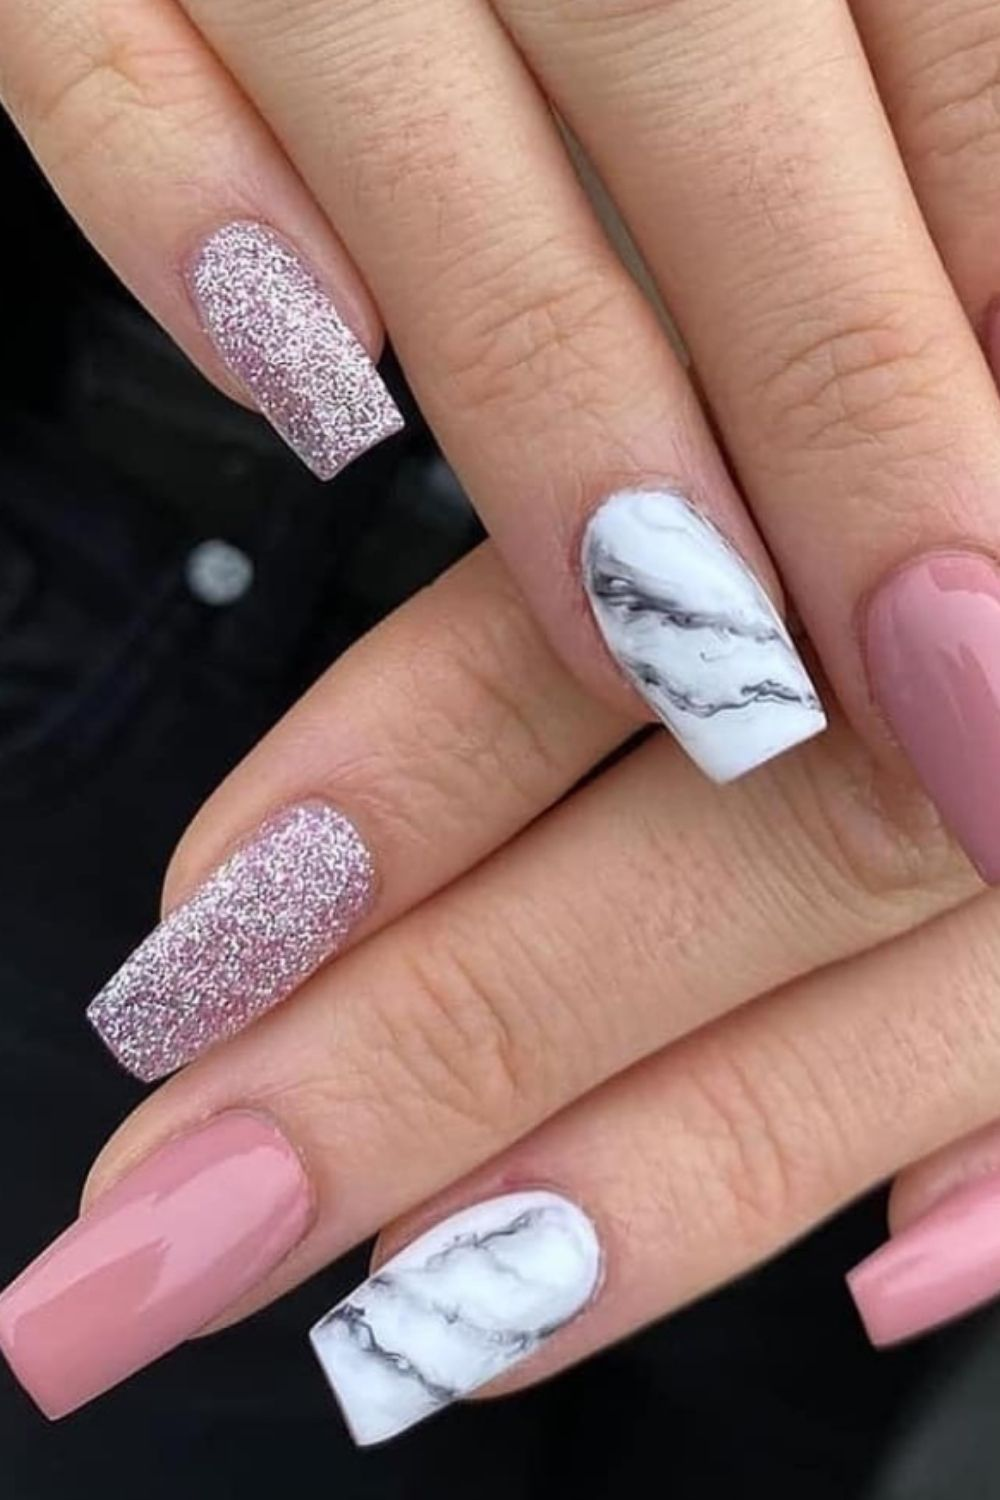 Marble and shiny coffin nail art design